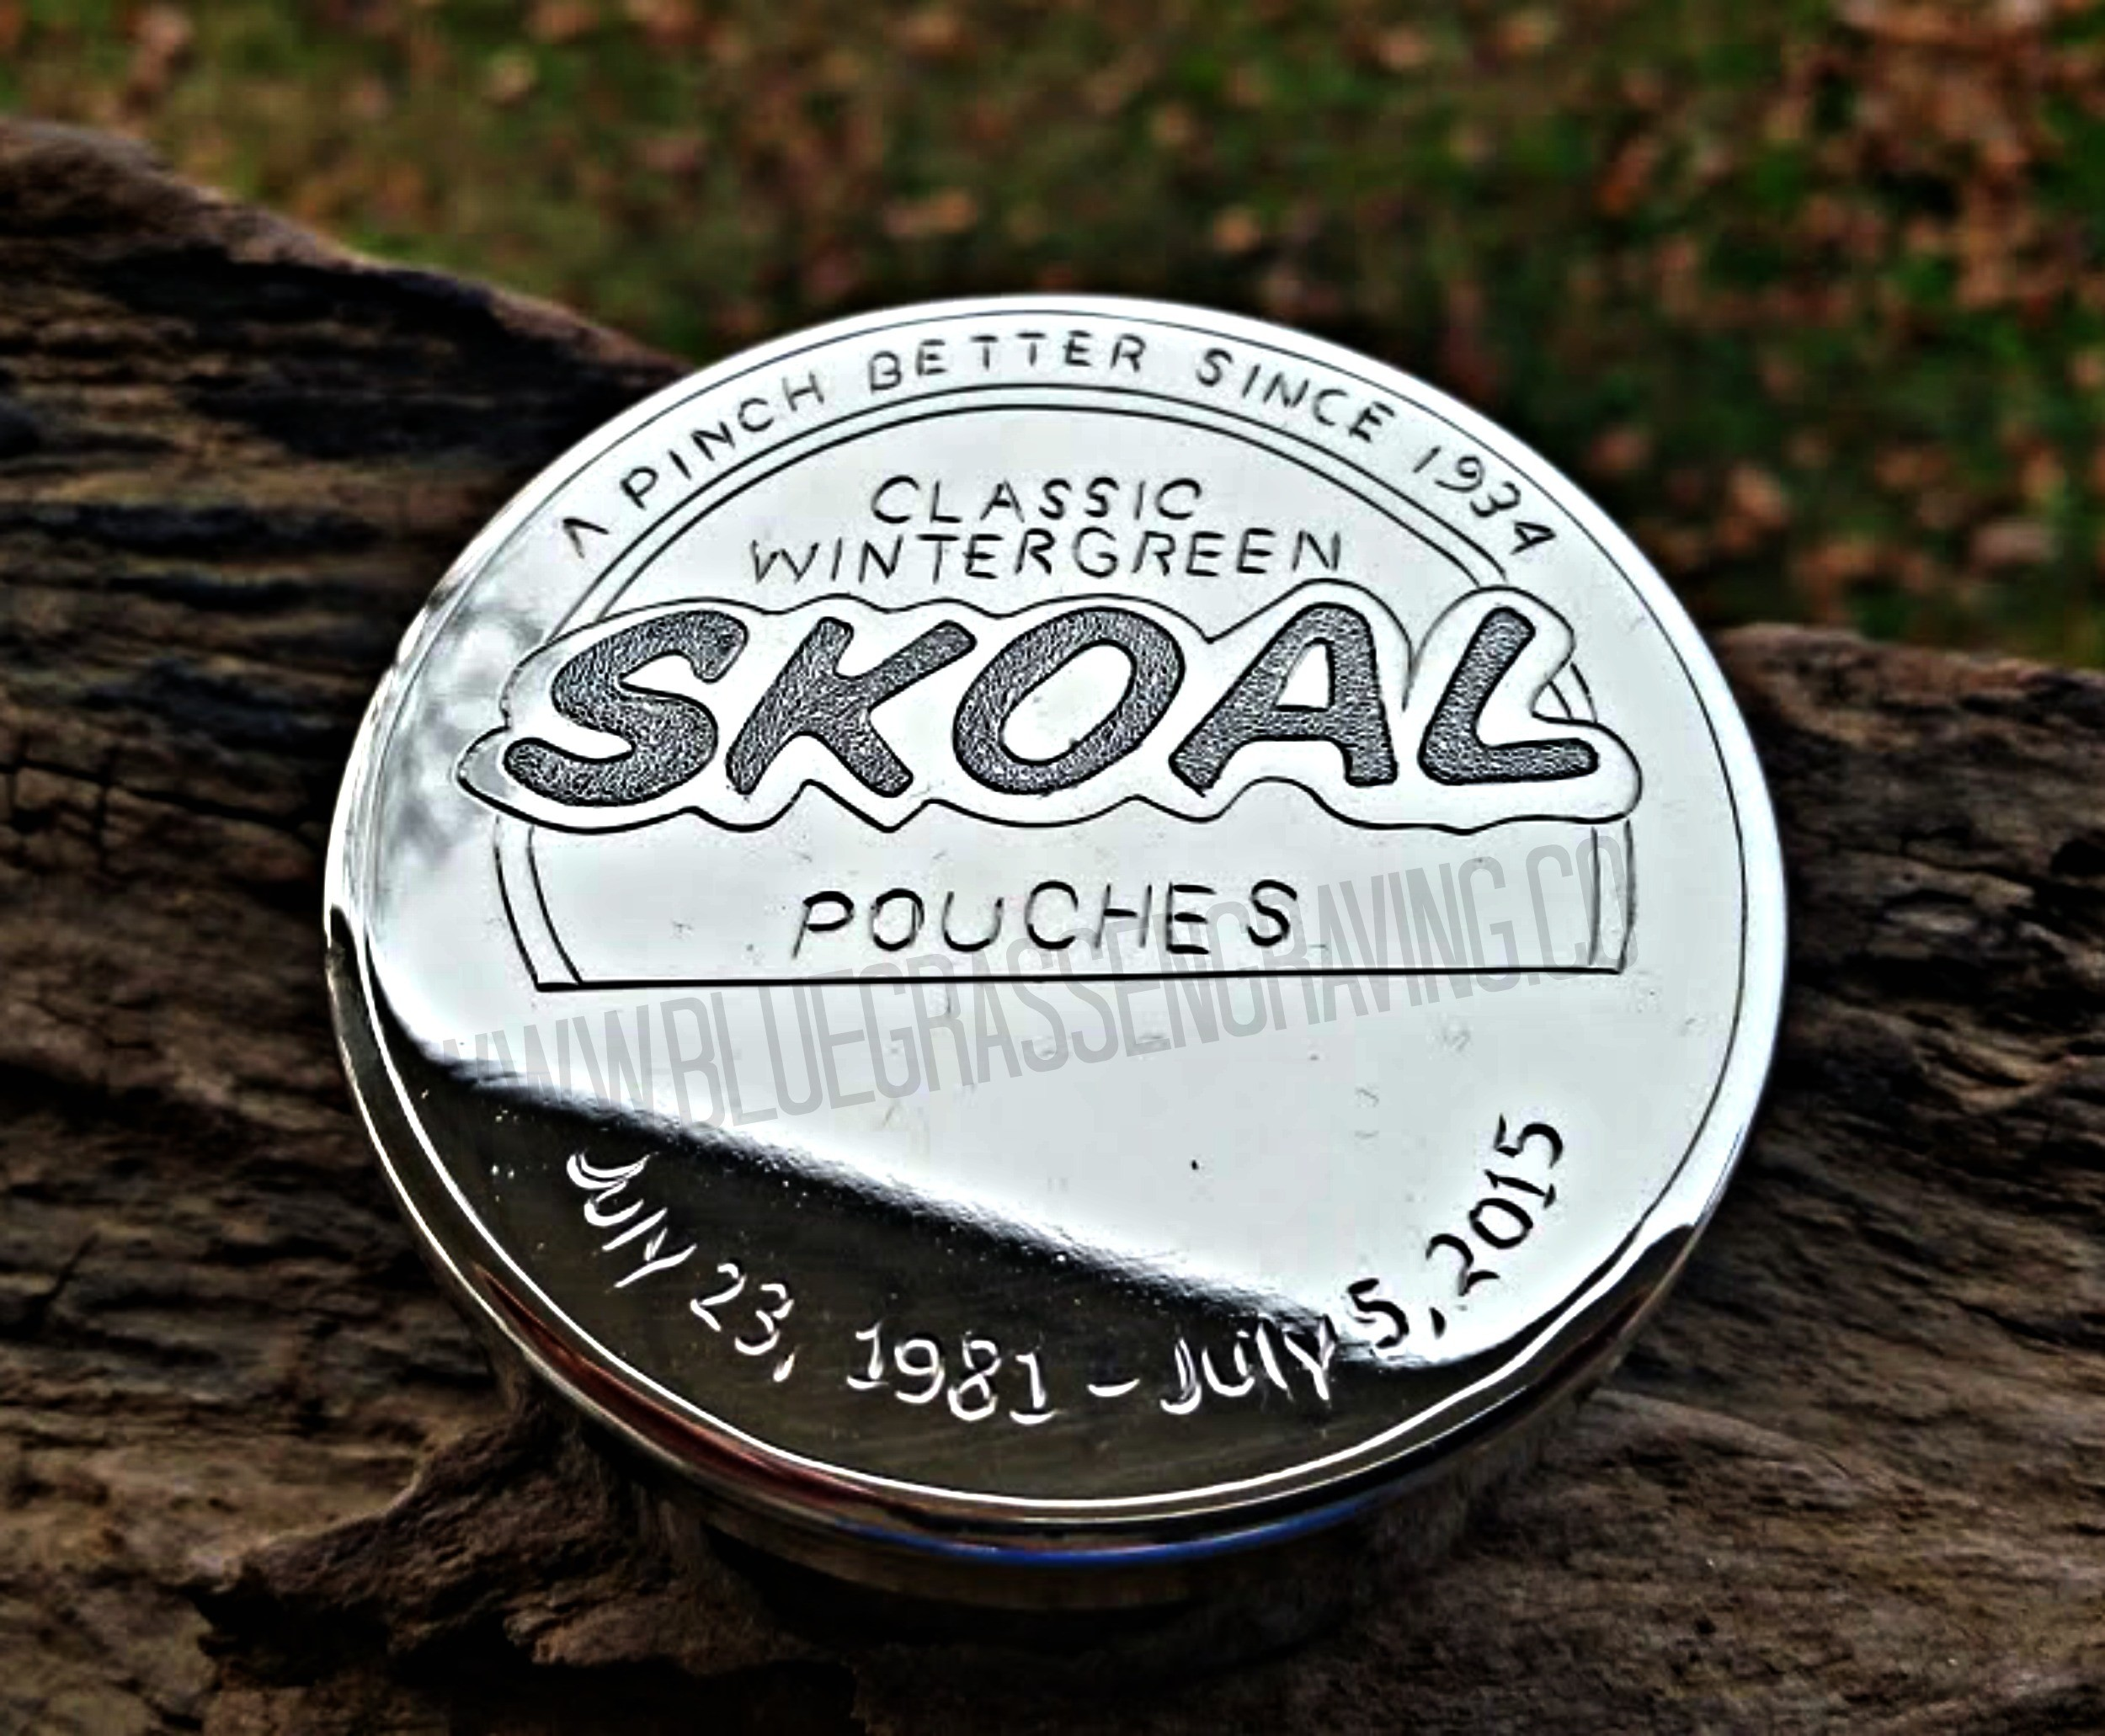 Personalized Skoal dip can, engraved with name on bottom of can. Available  at www